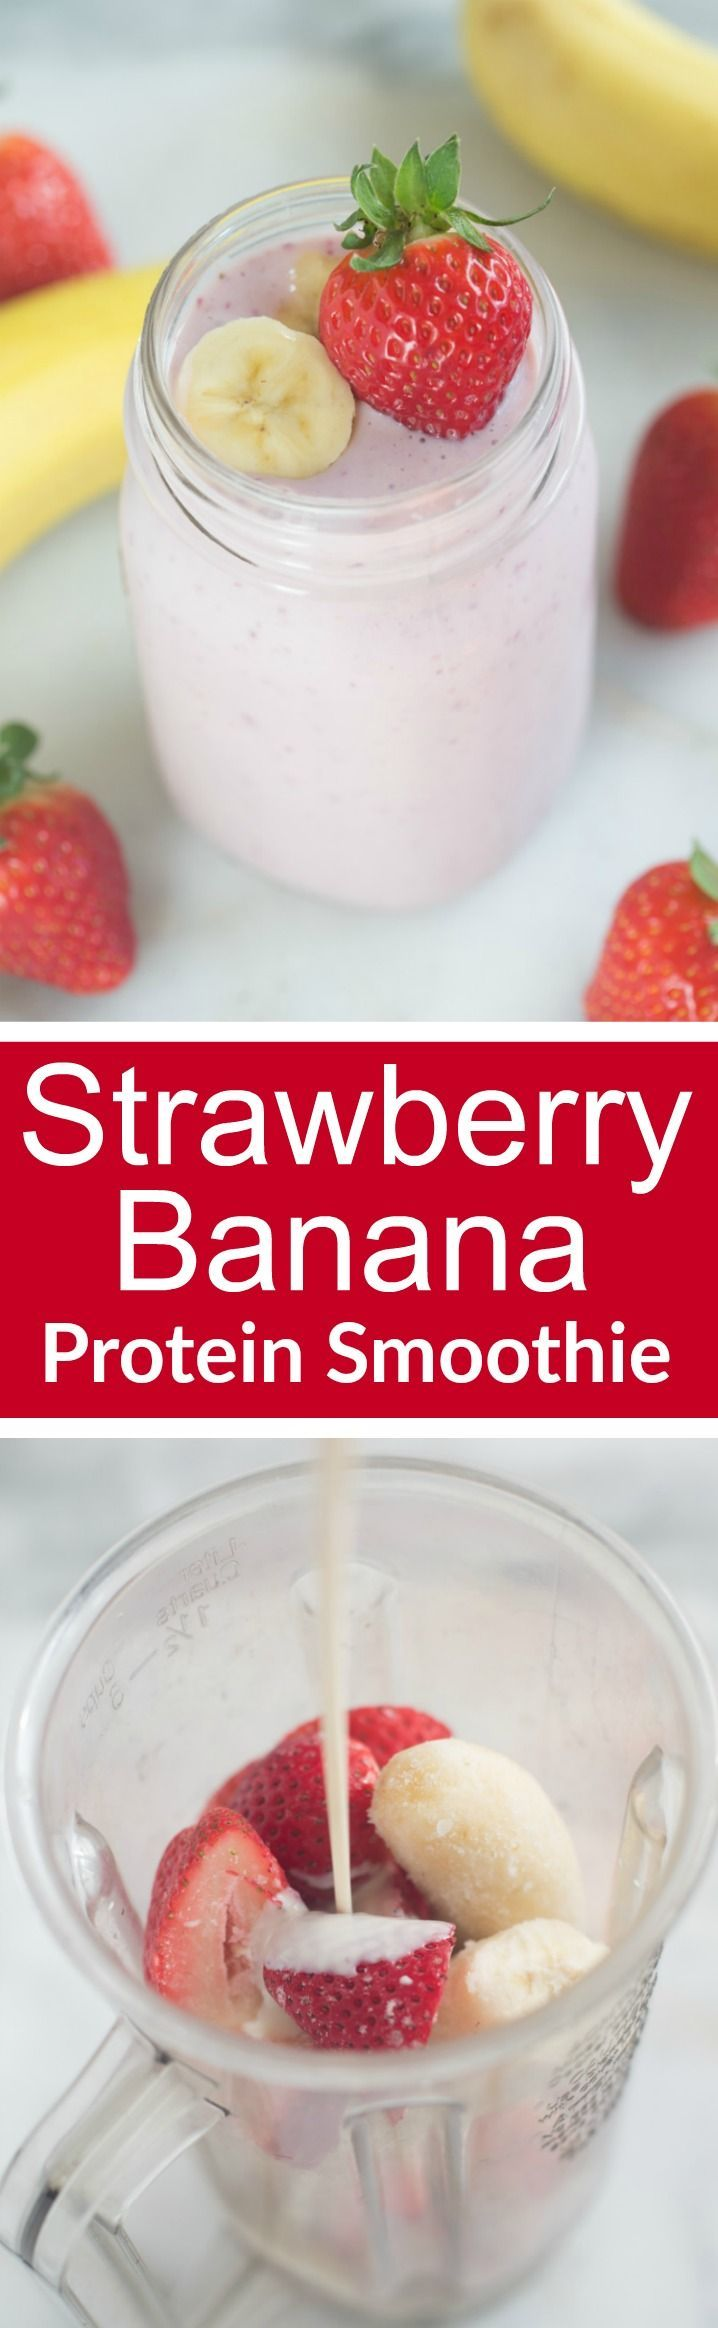 The BEST fresh Strawberry and Banana Protein Smoothie, with a secret ingredient!   Tastes Better From Scratch @LoveMySilk #ad